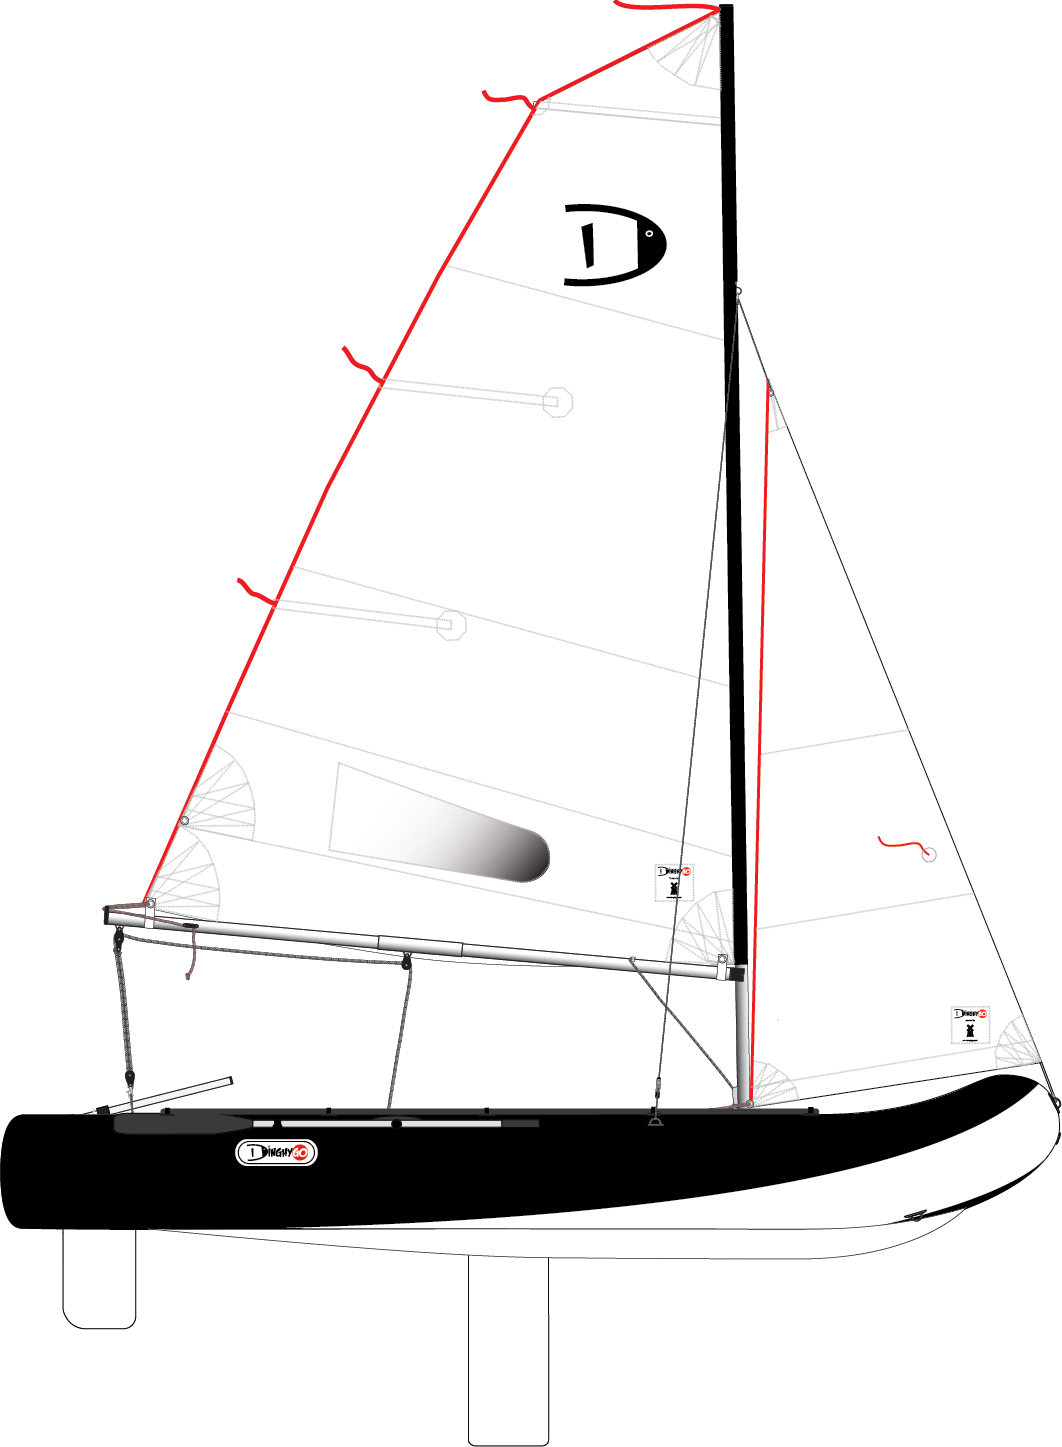 DinghyGo Orca 375 (levering april 2021)